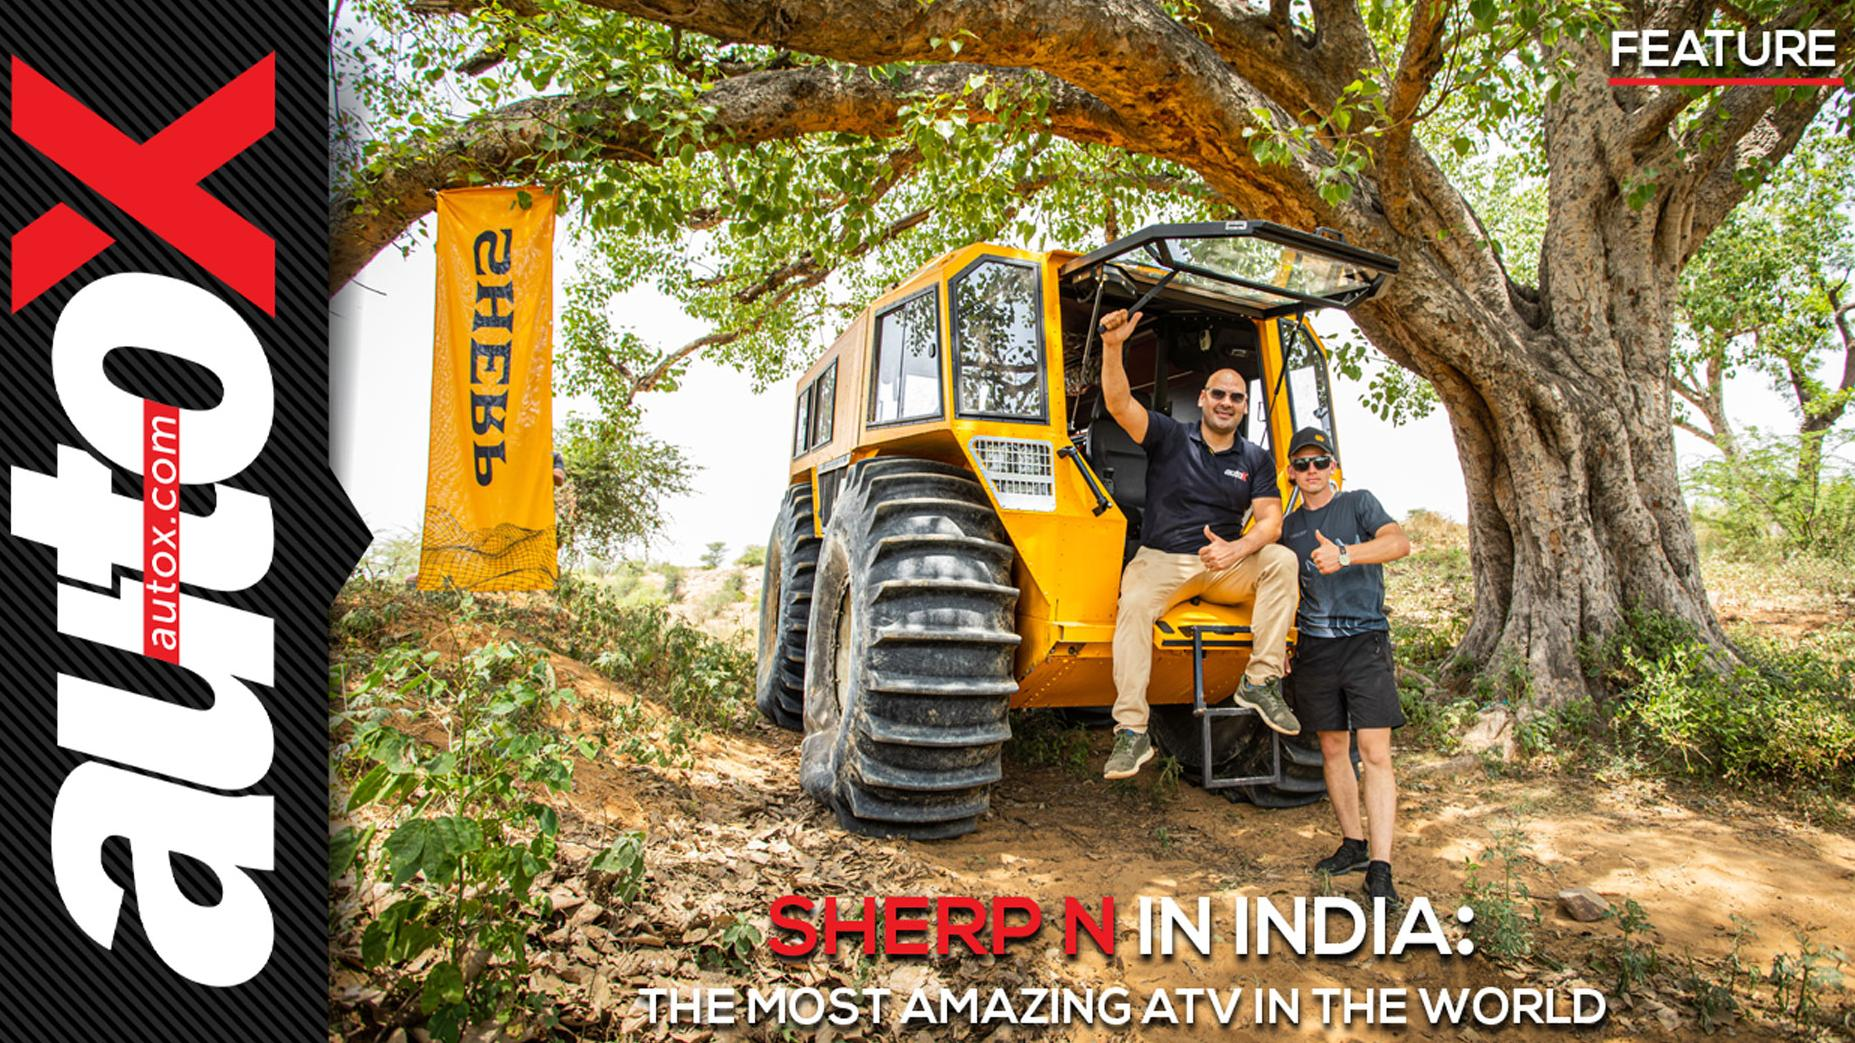 SHERP N in India: The most amazing ATV in the World | Feature | autoX